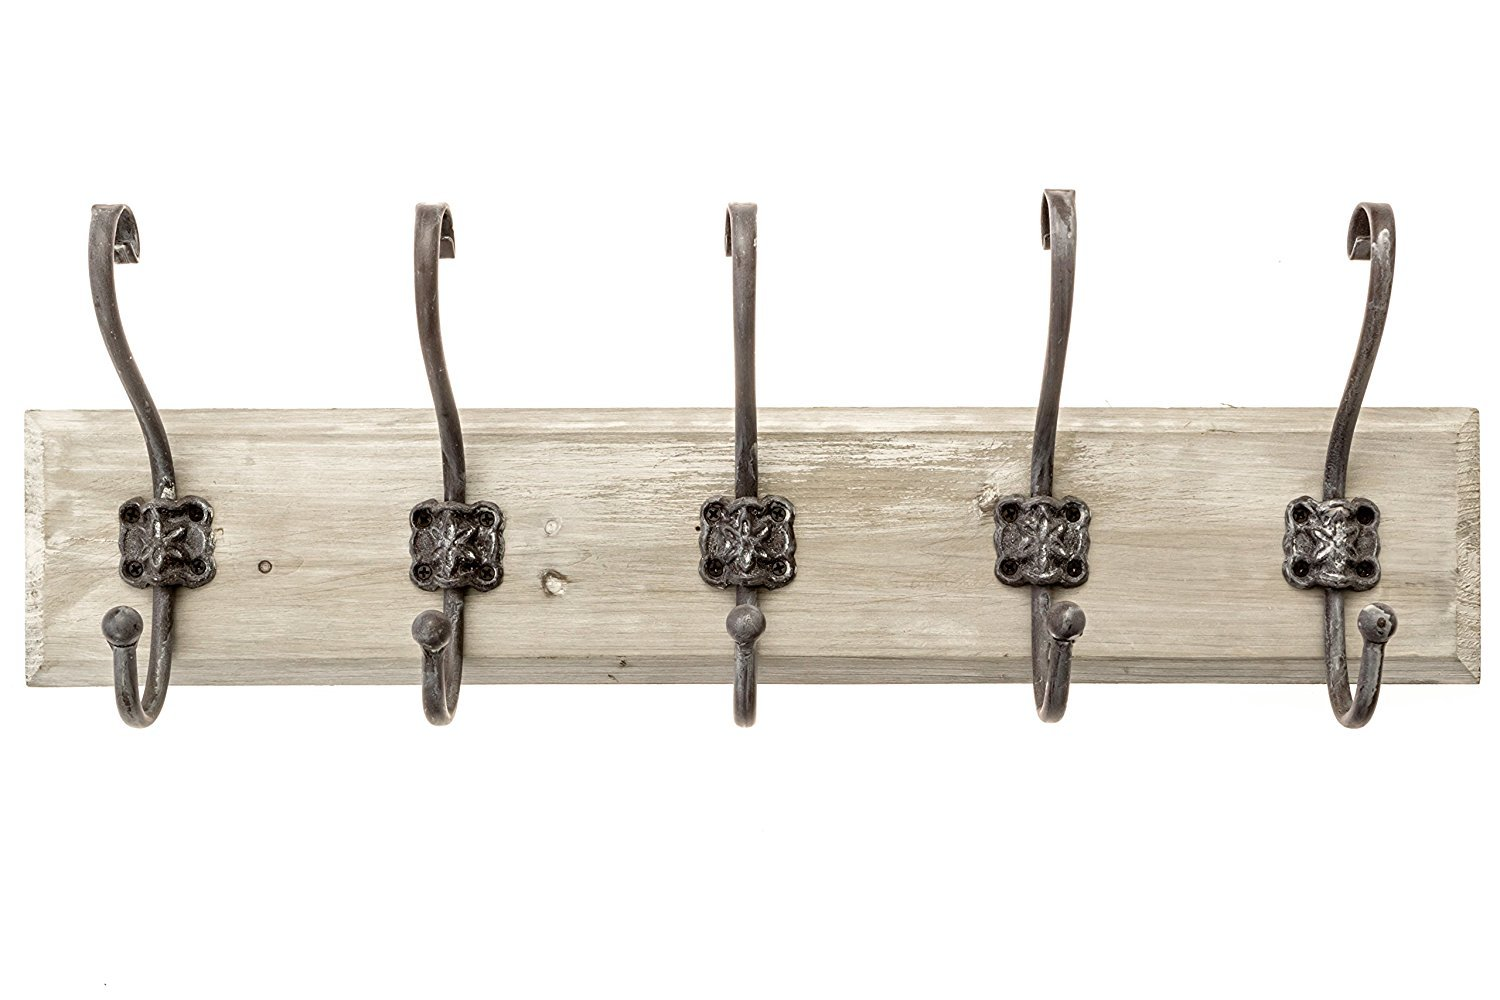 Avignon Rustic Hook Rail Coat or Towel Rack 24 inches Wide and 4.5 inches high